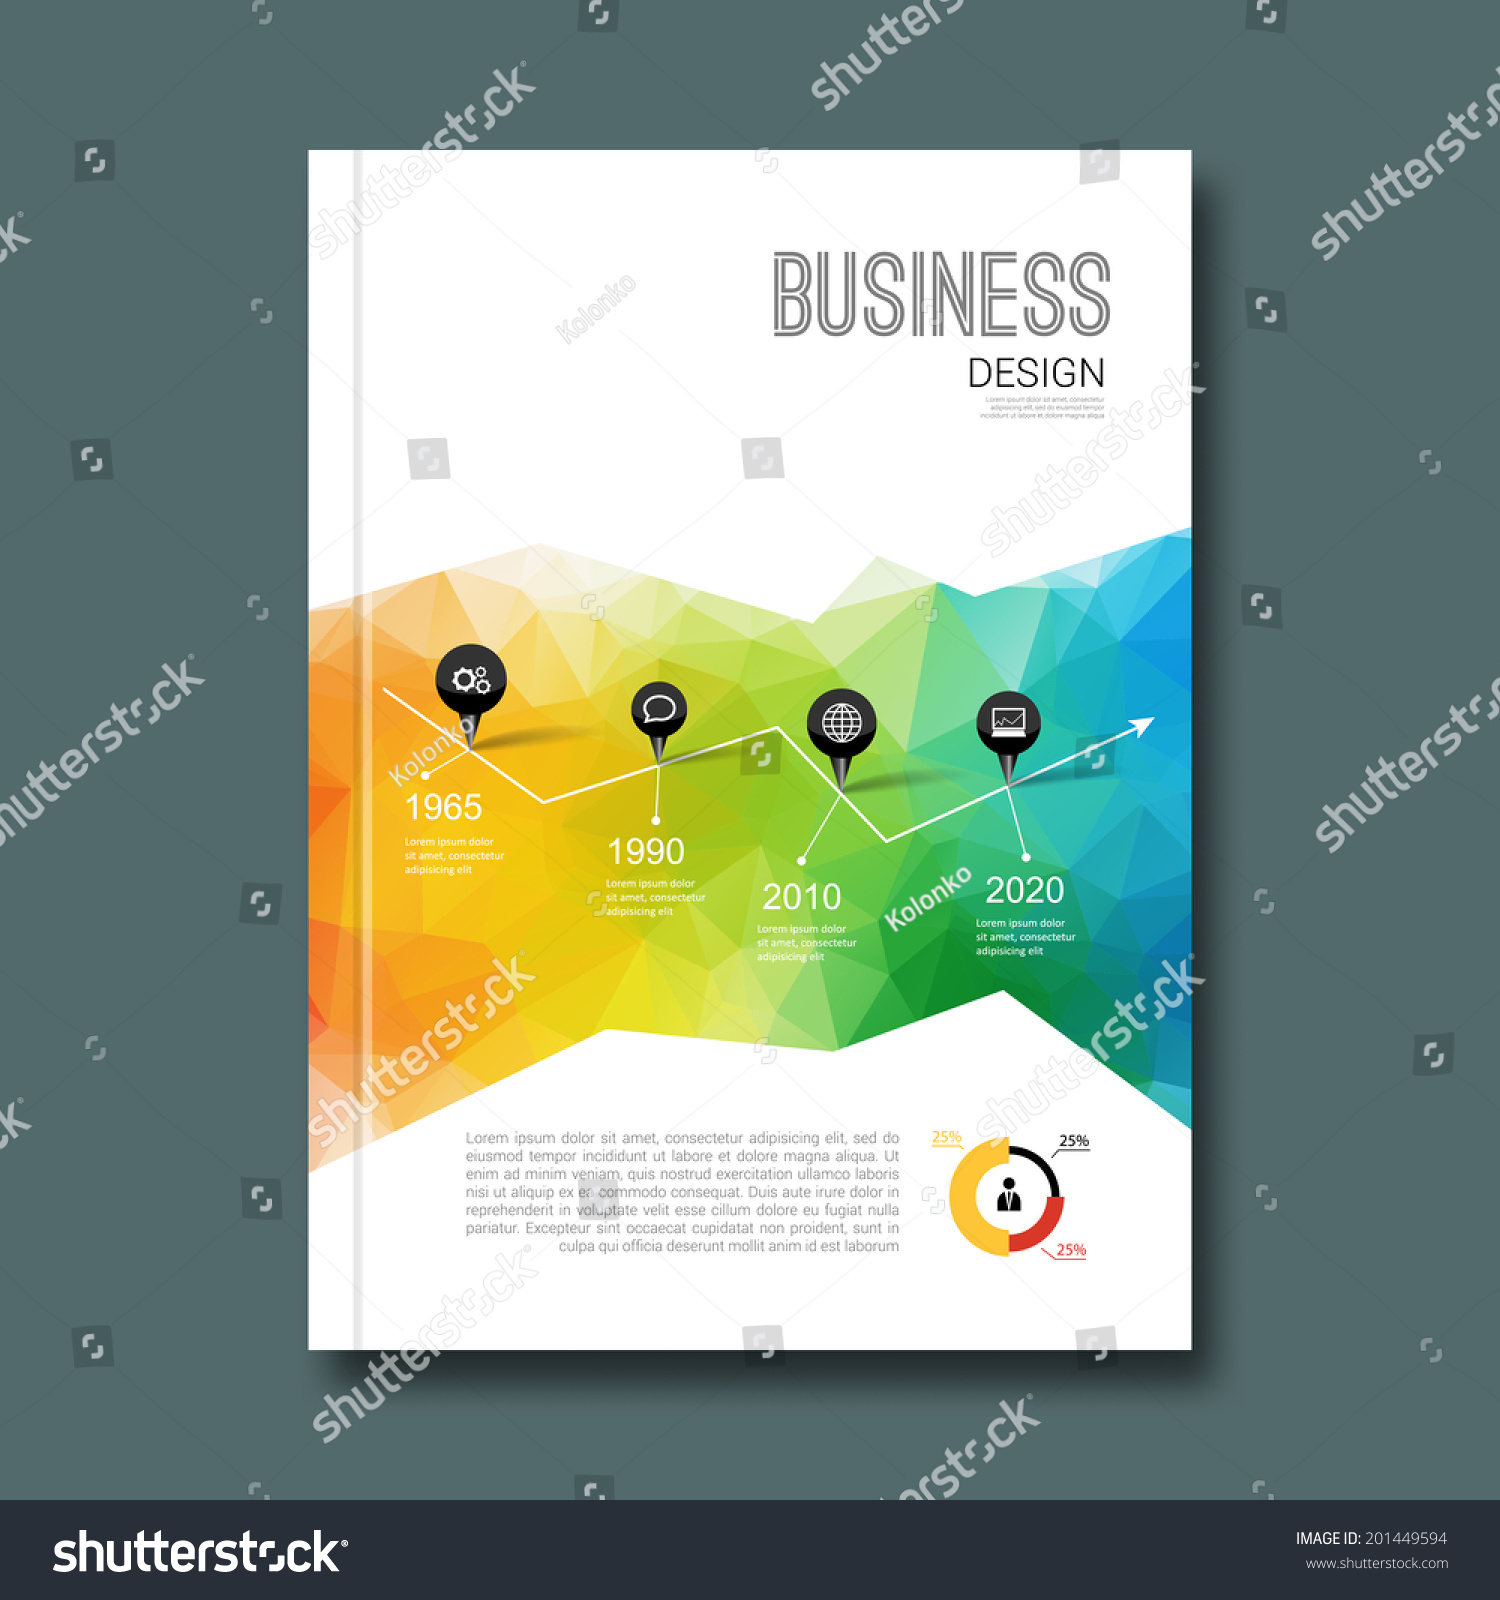 royalty free business design background cover book 201449594